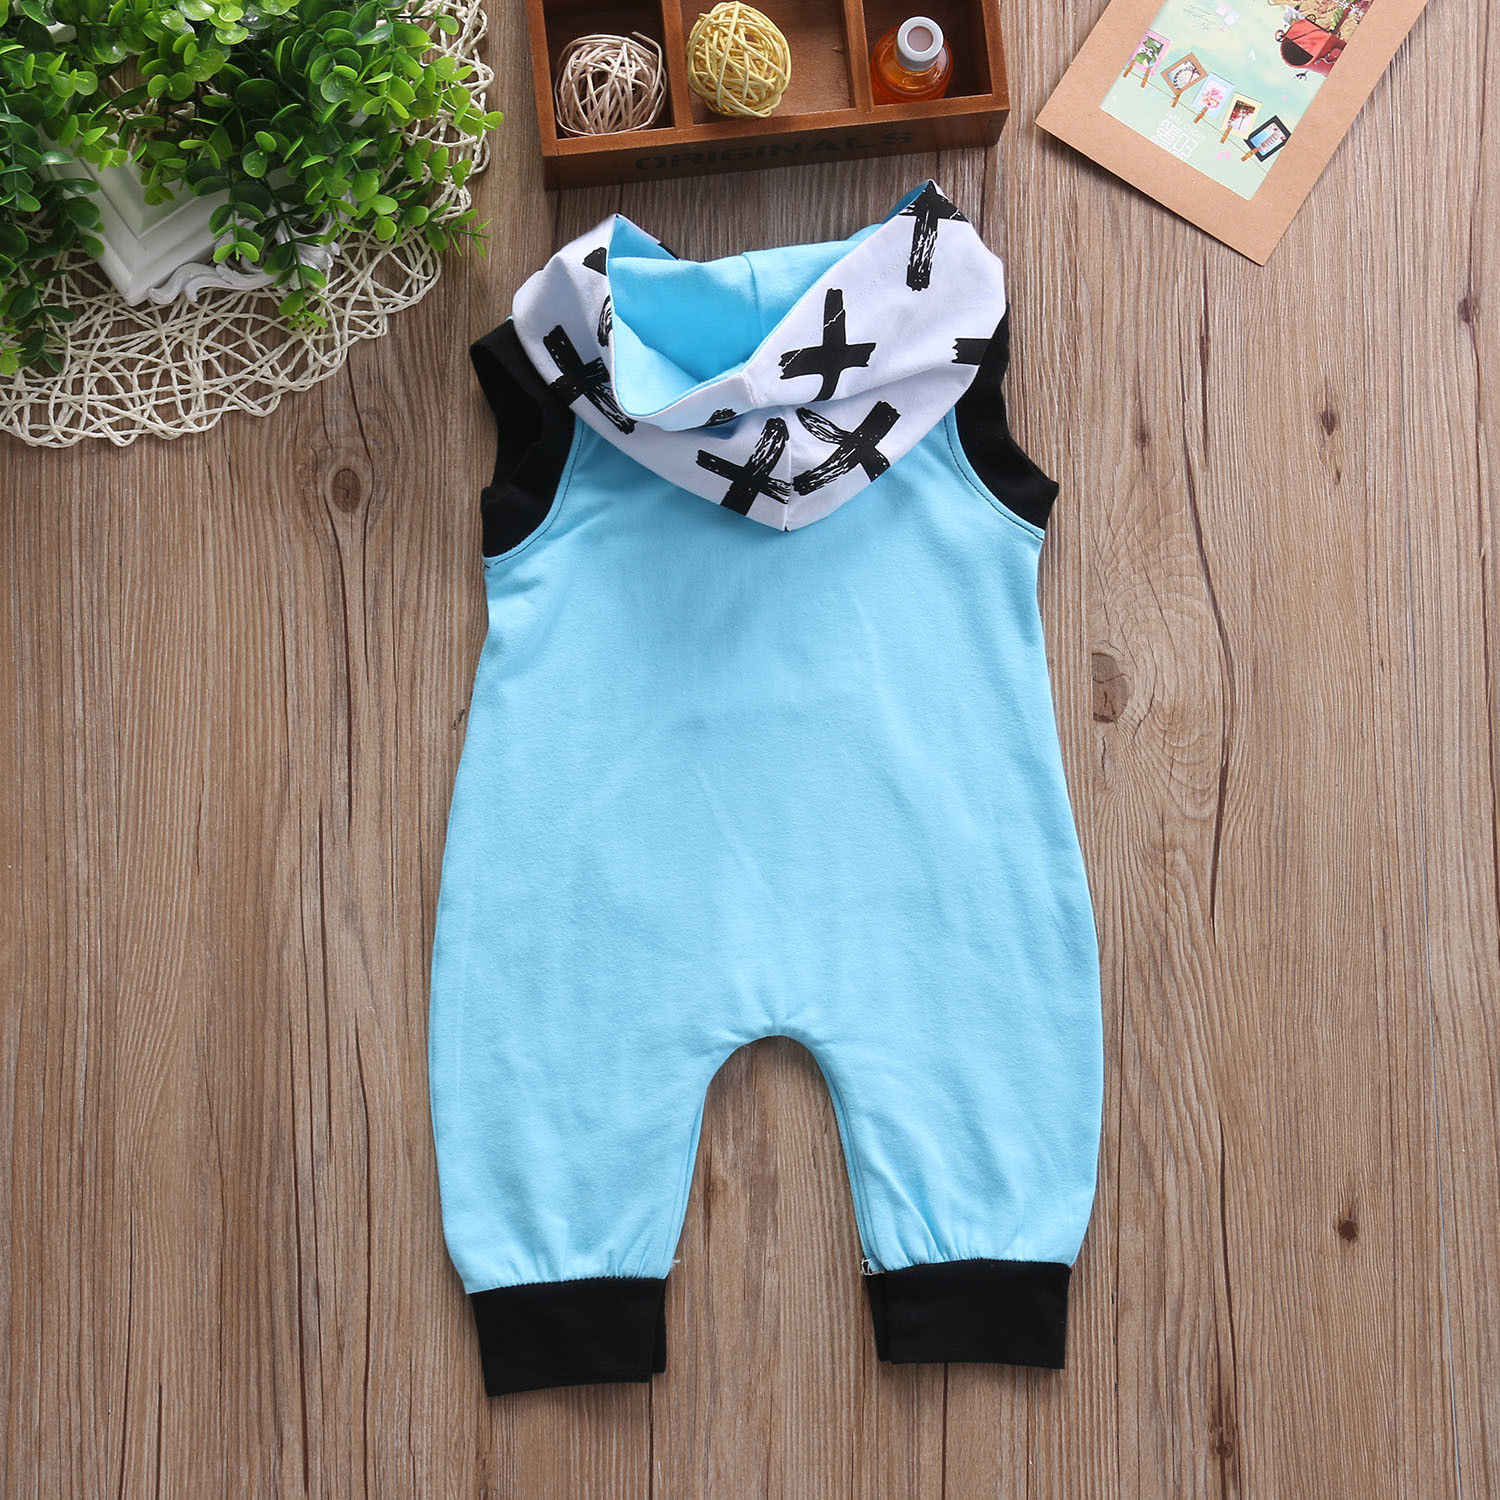 255d9e2f91ac Detail Feedback Questions about Newborn Baby Boys Romper Sleeveless ...